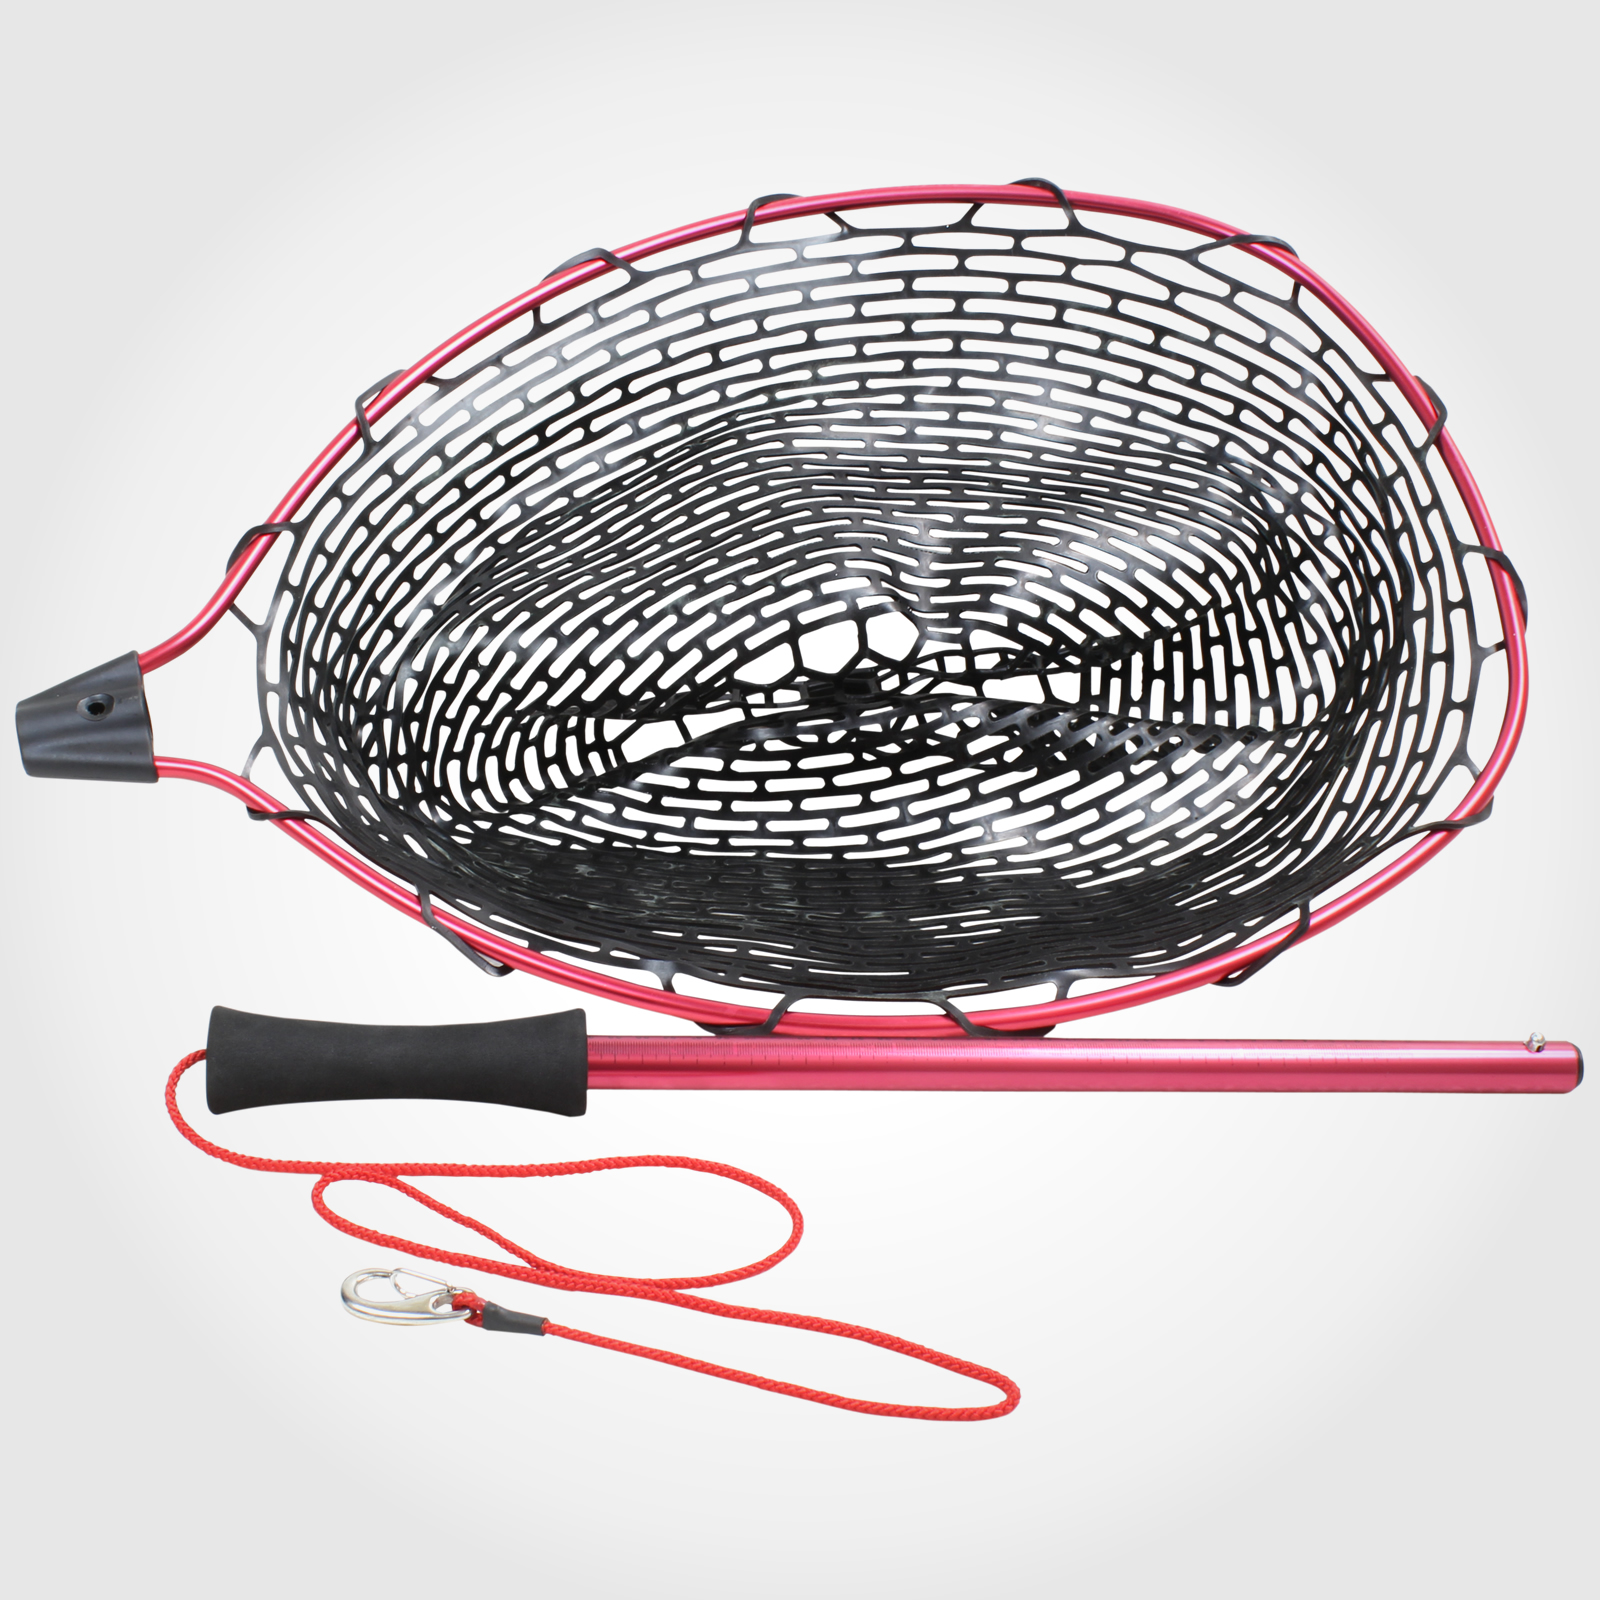 fishing landing net compact kayak boat telescopic fish